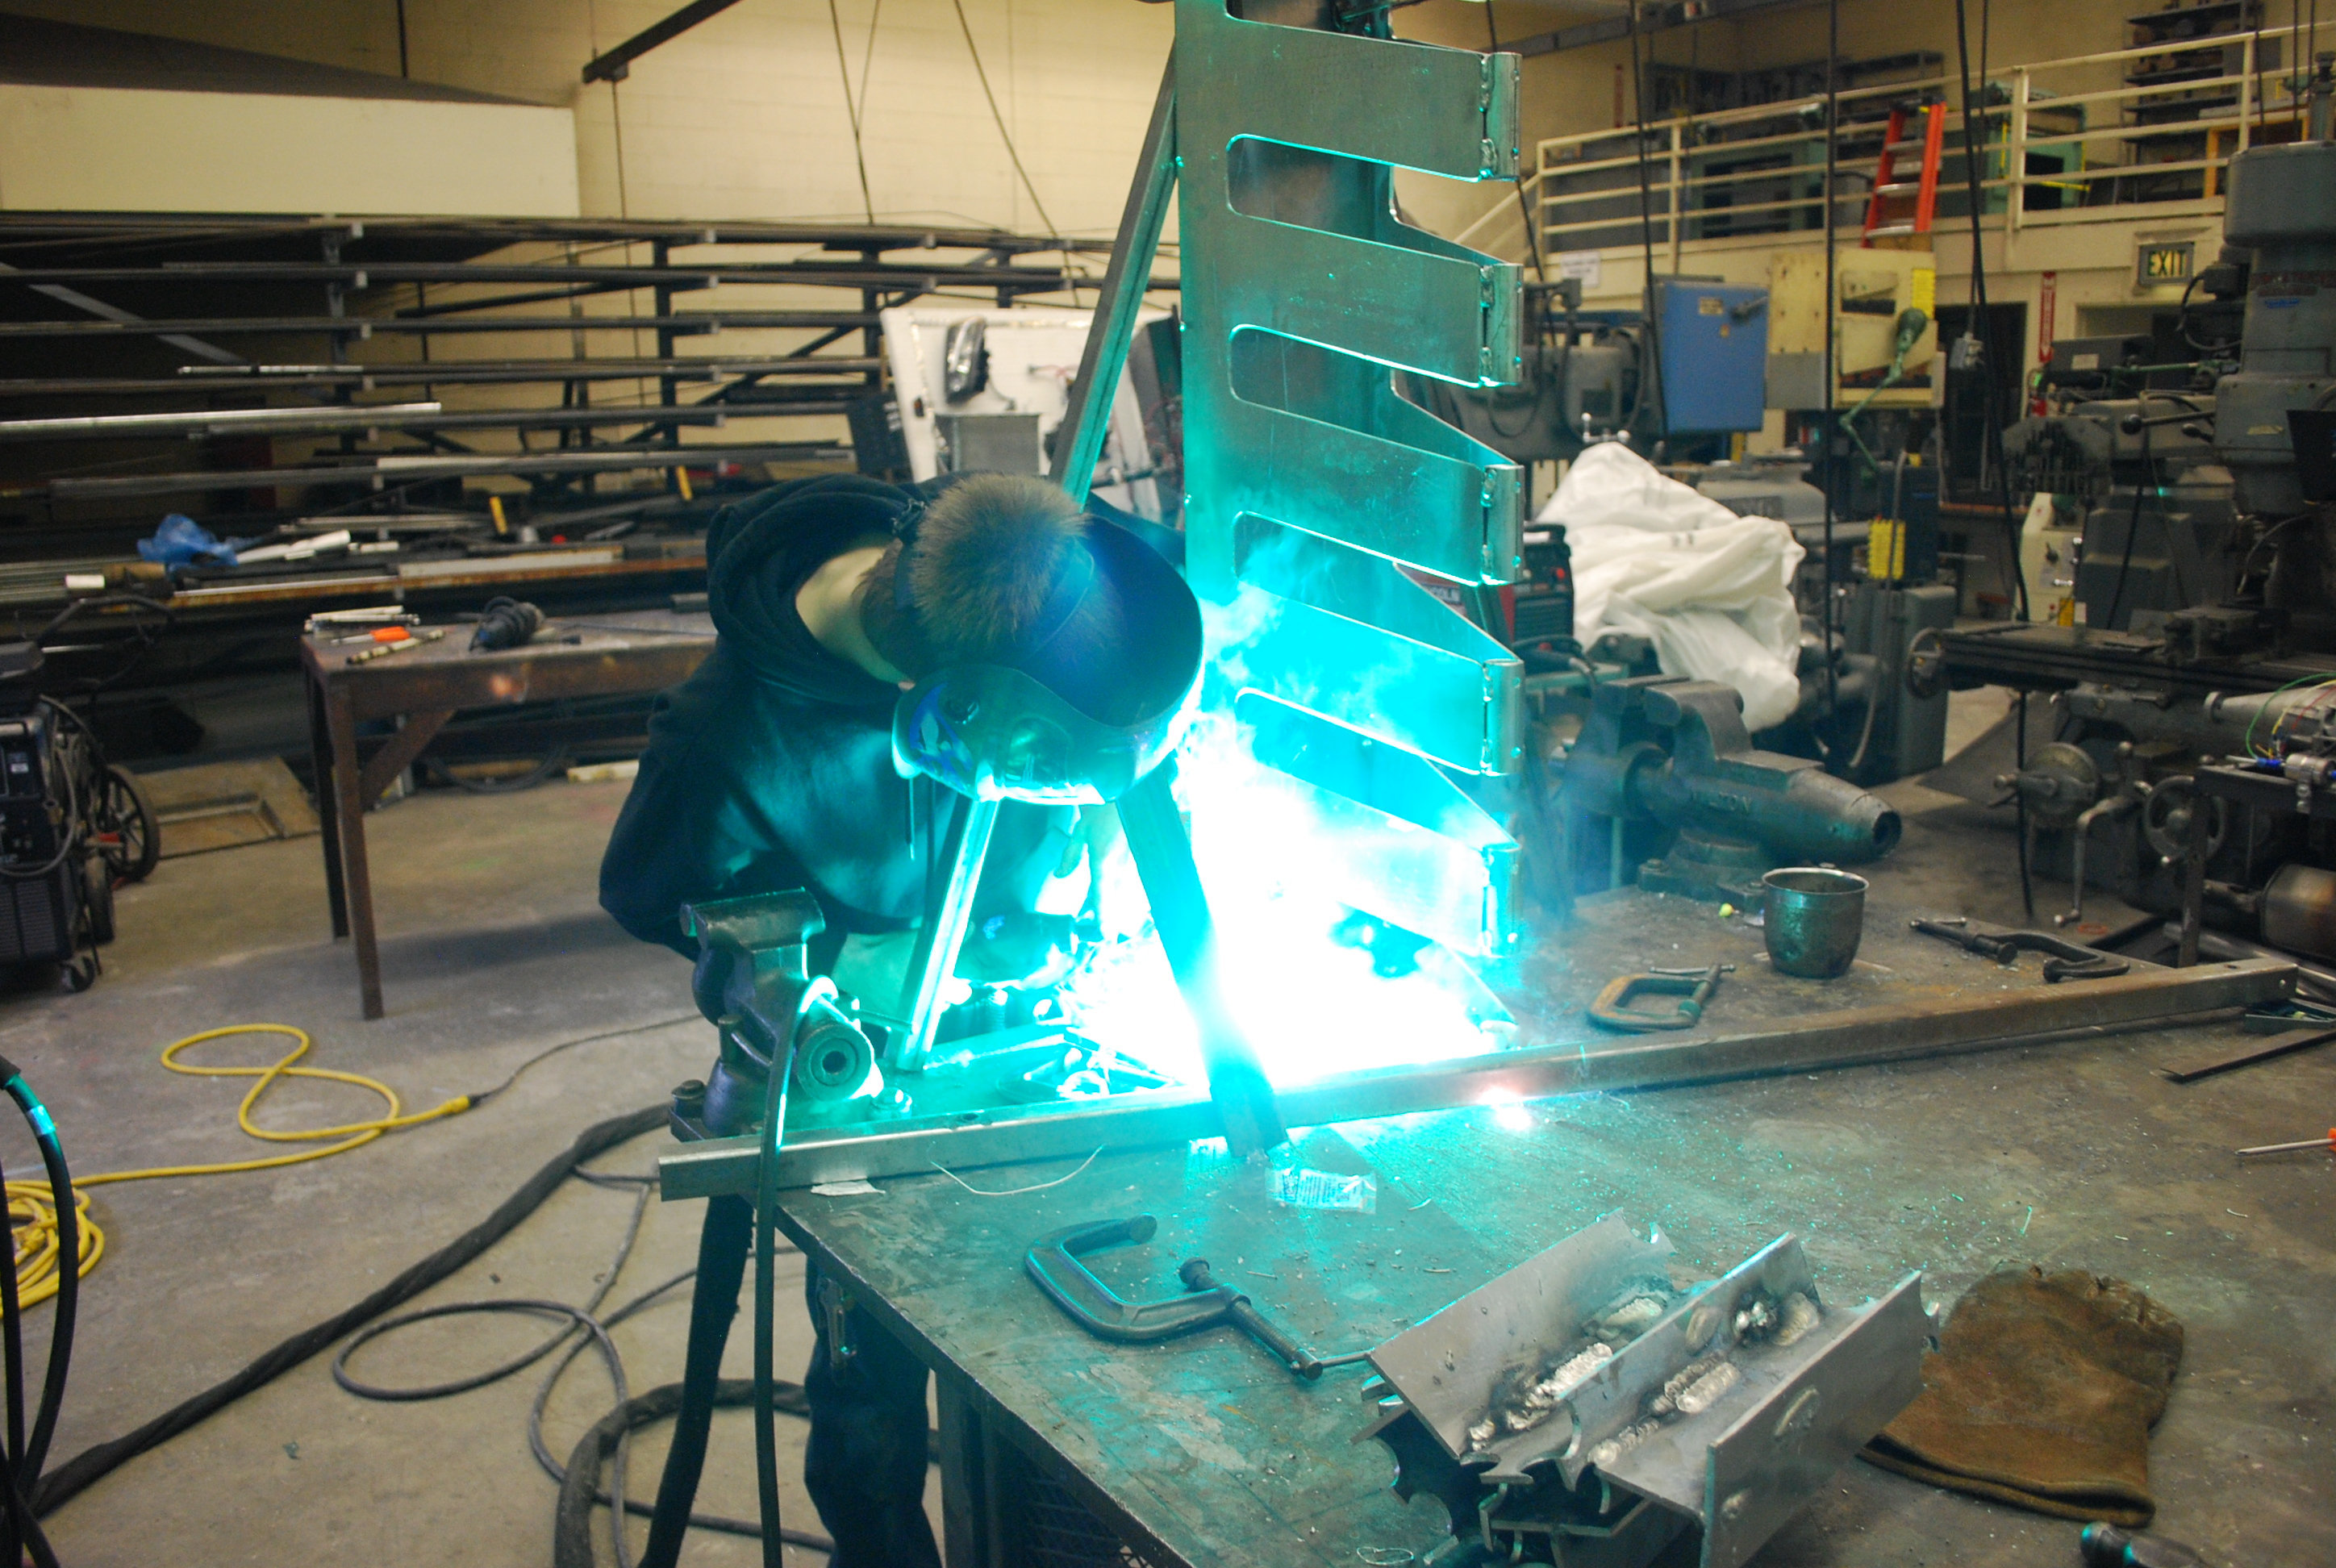 Welding in the manufacturing lab